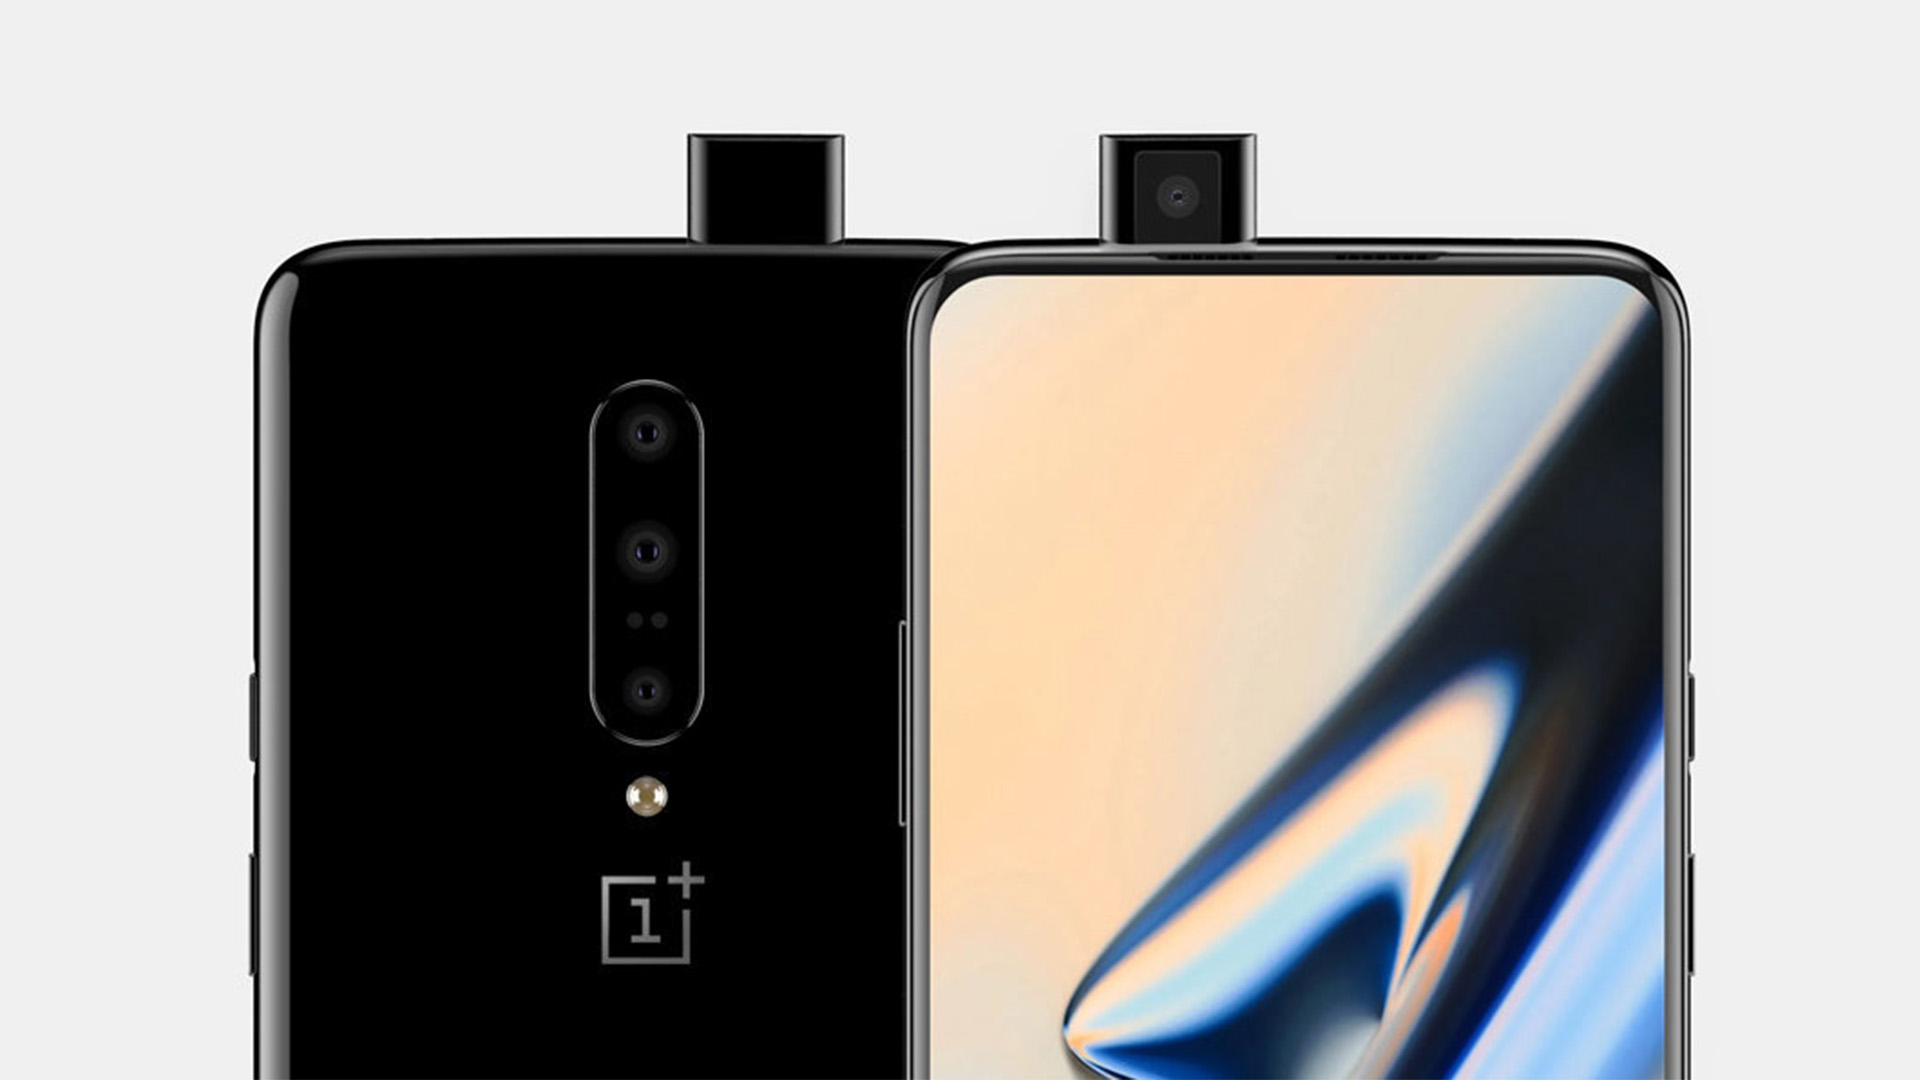 T-Mobile OnePlus 7 Pro Android 10 update